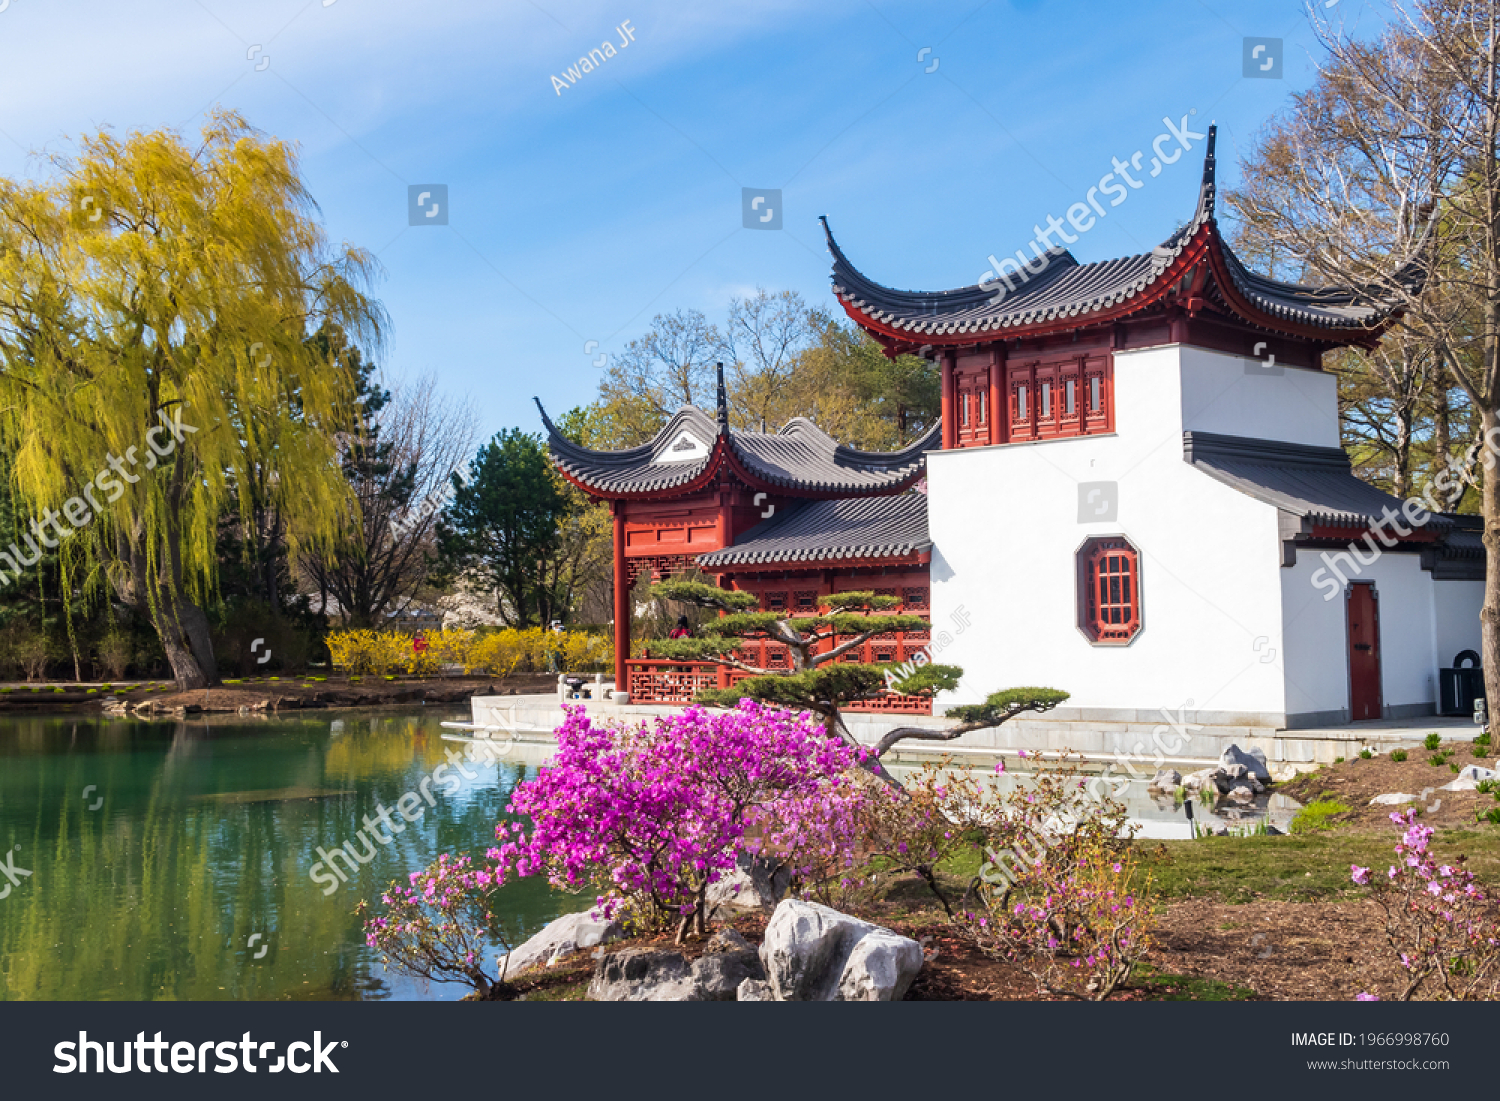 Montreal, Canada - april 2021 : spring view of a traditional chinese pavilion within the botanical garden